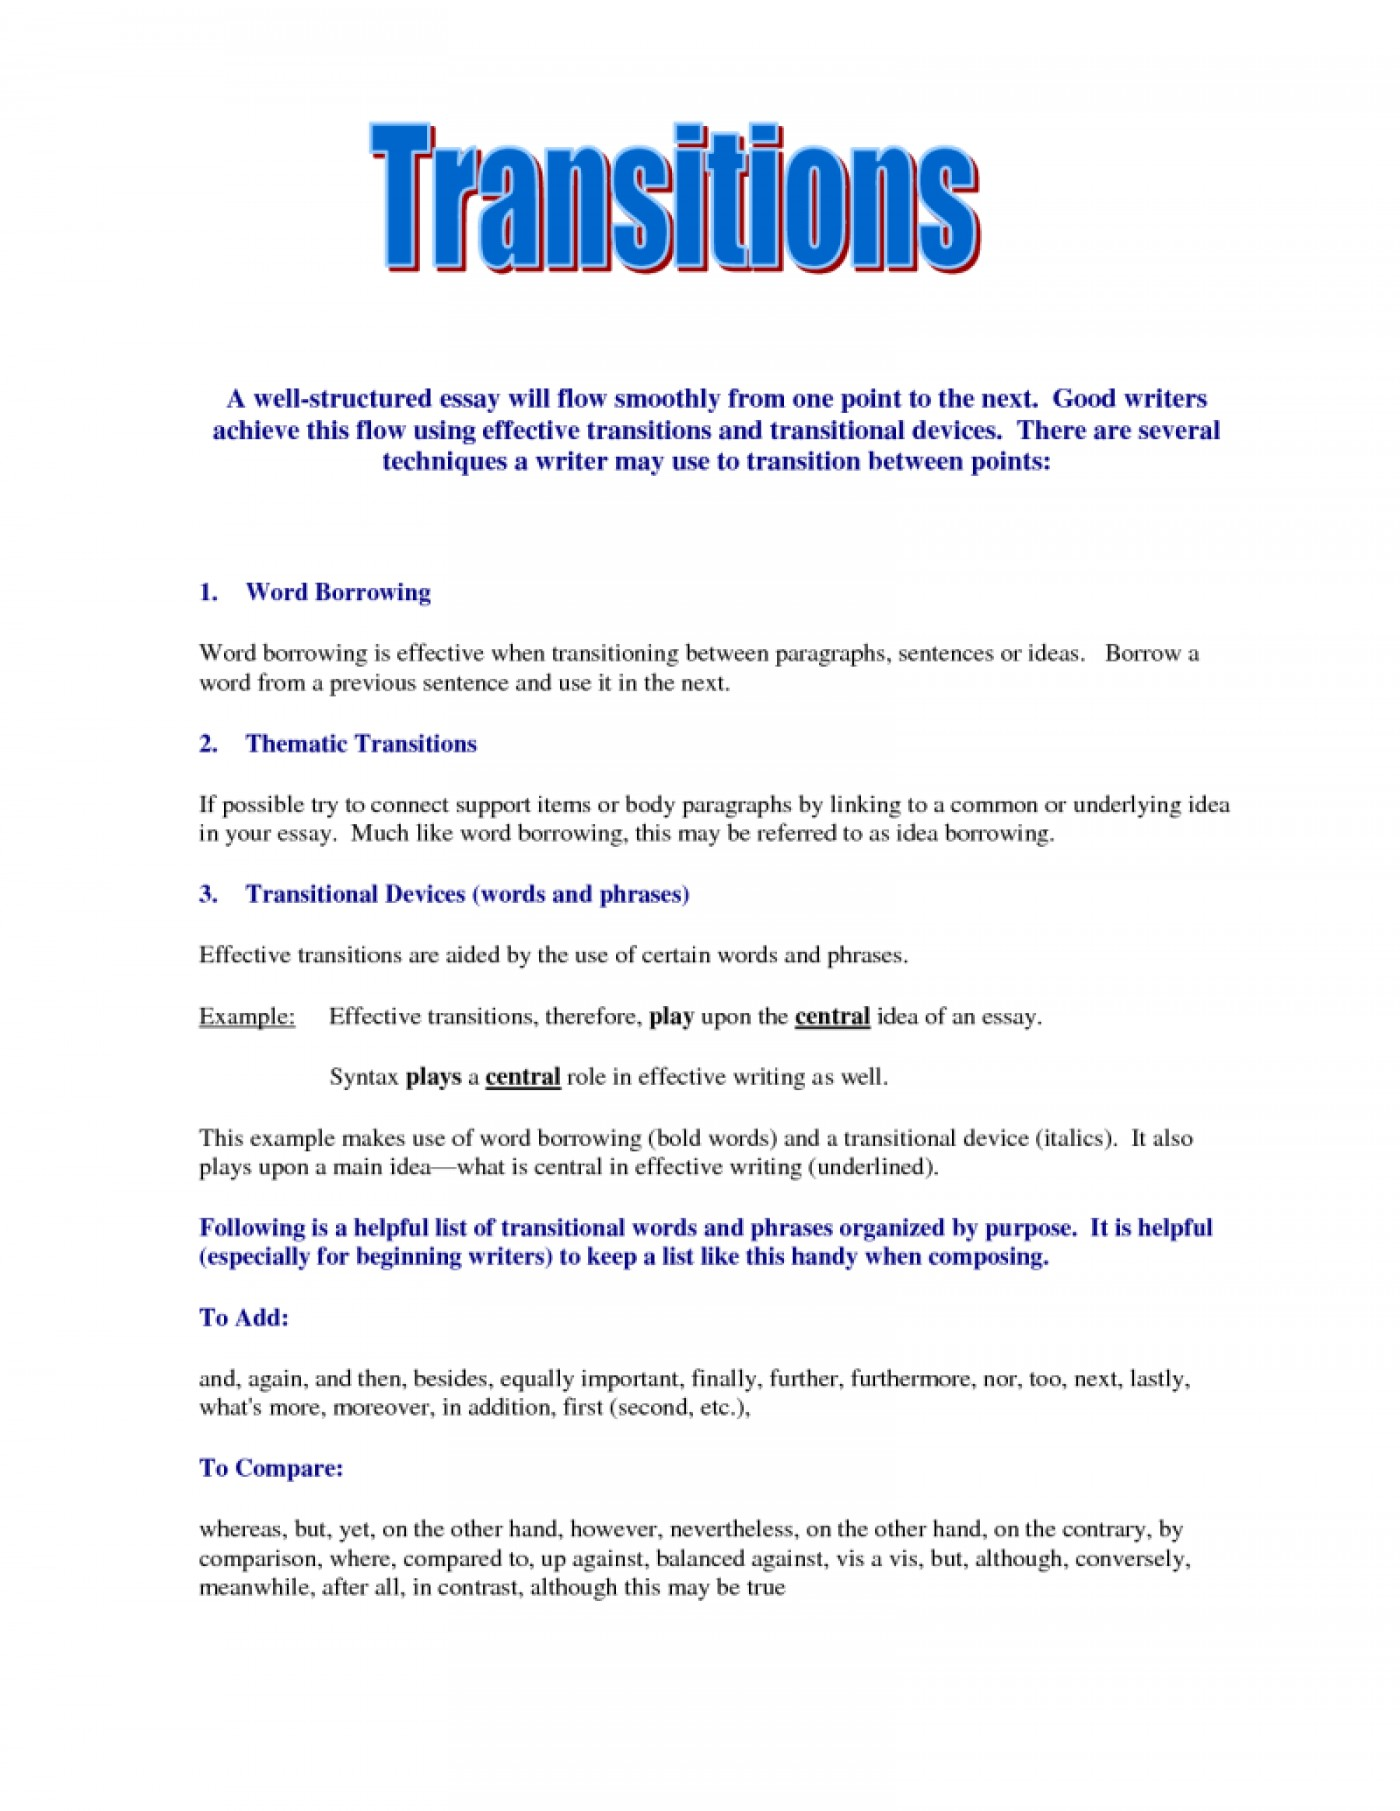 027 Transition Words And Phrases Fors Supporting Paragraphs Paragraph Transitions Ucsb Writing Program First Body Awesome Collection Of Sentences Examples You Amazing For Essays Opinion Narrative 5th Grade Expository 1400